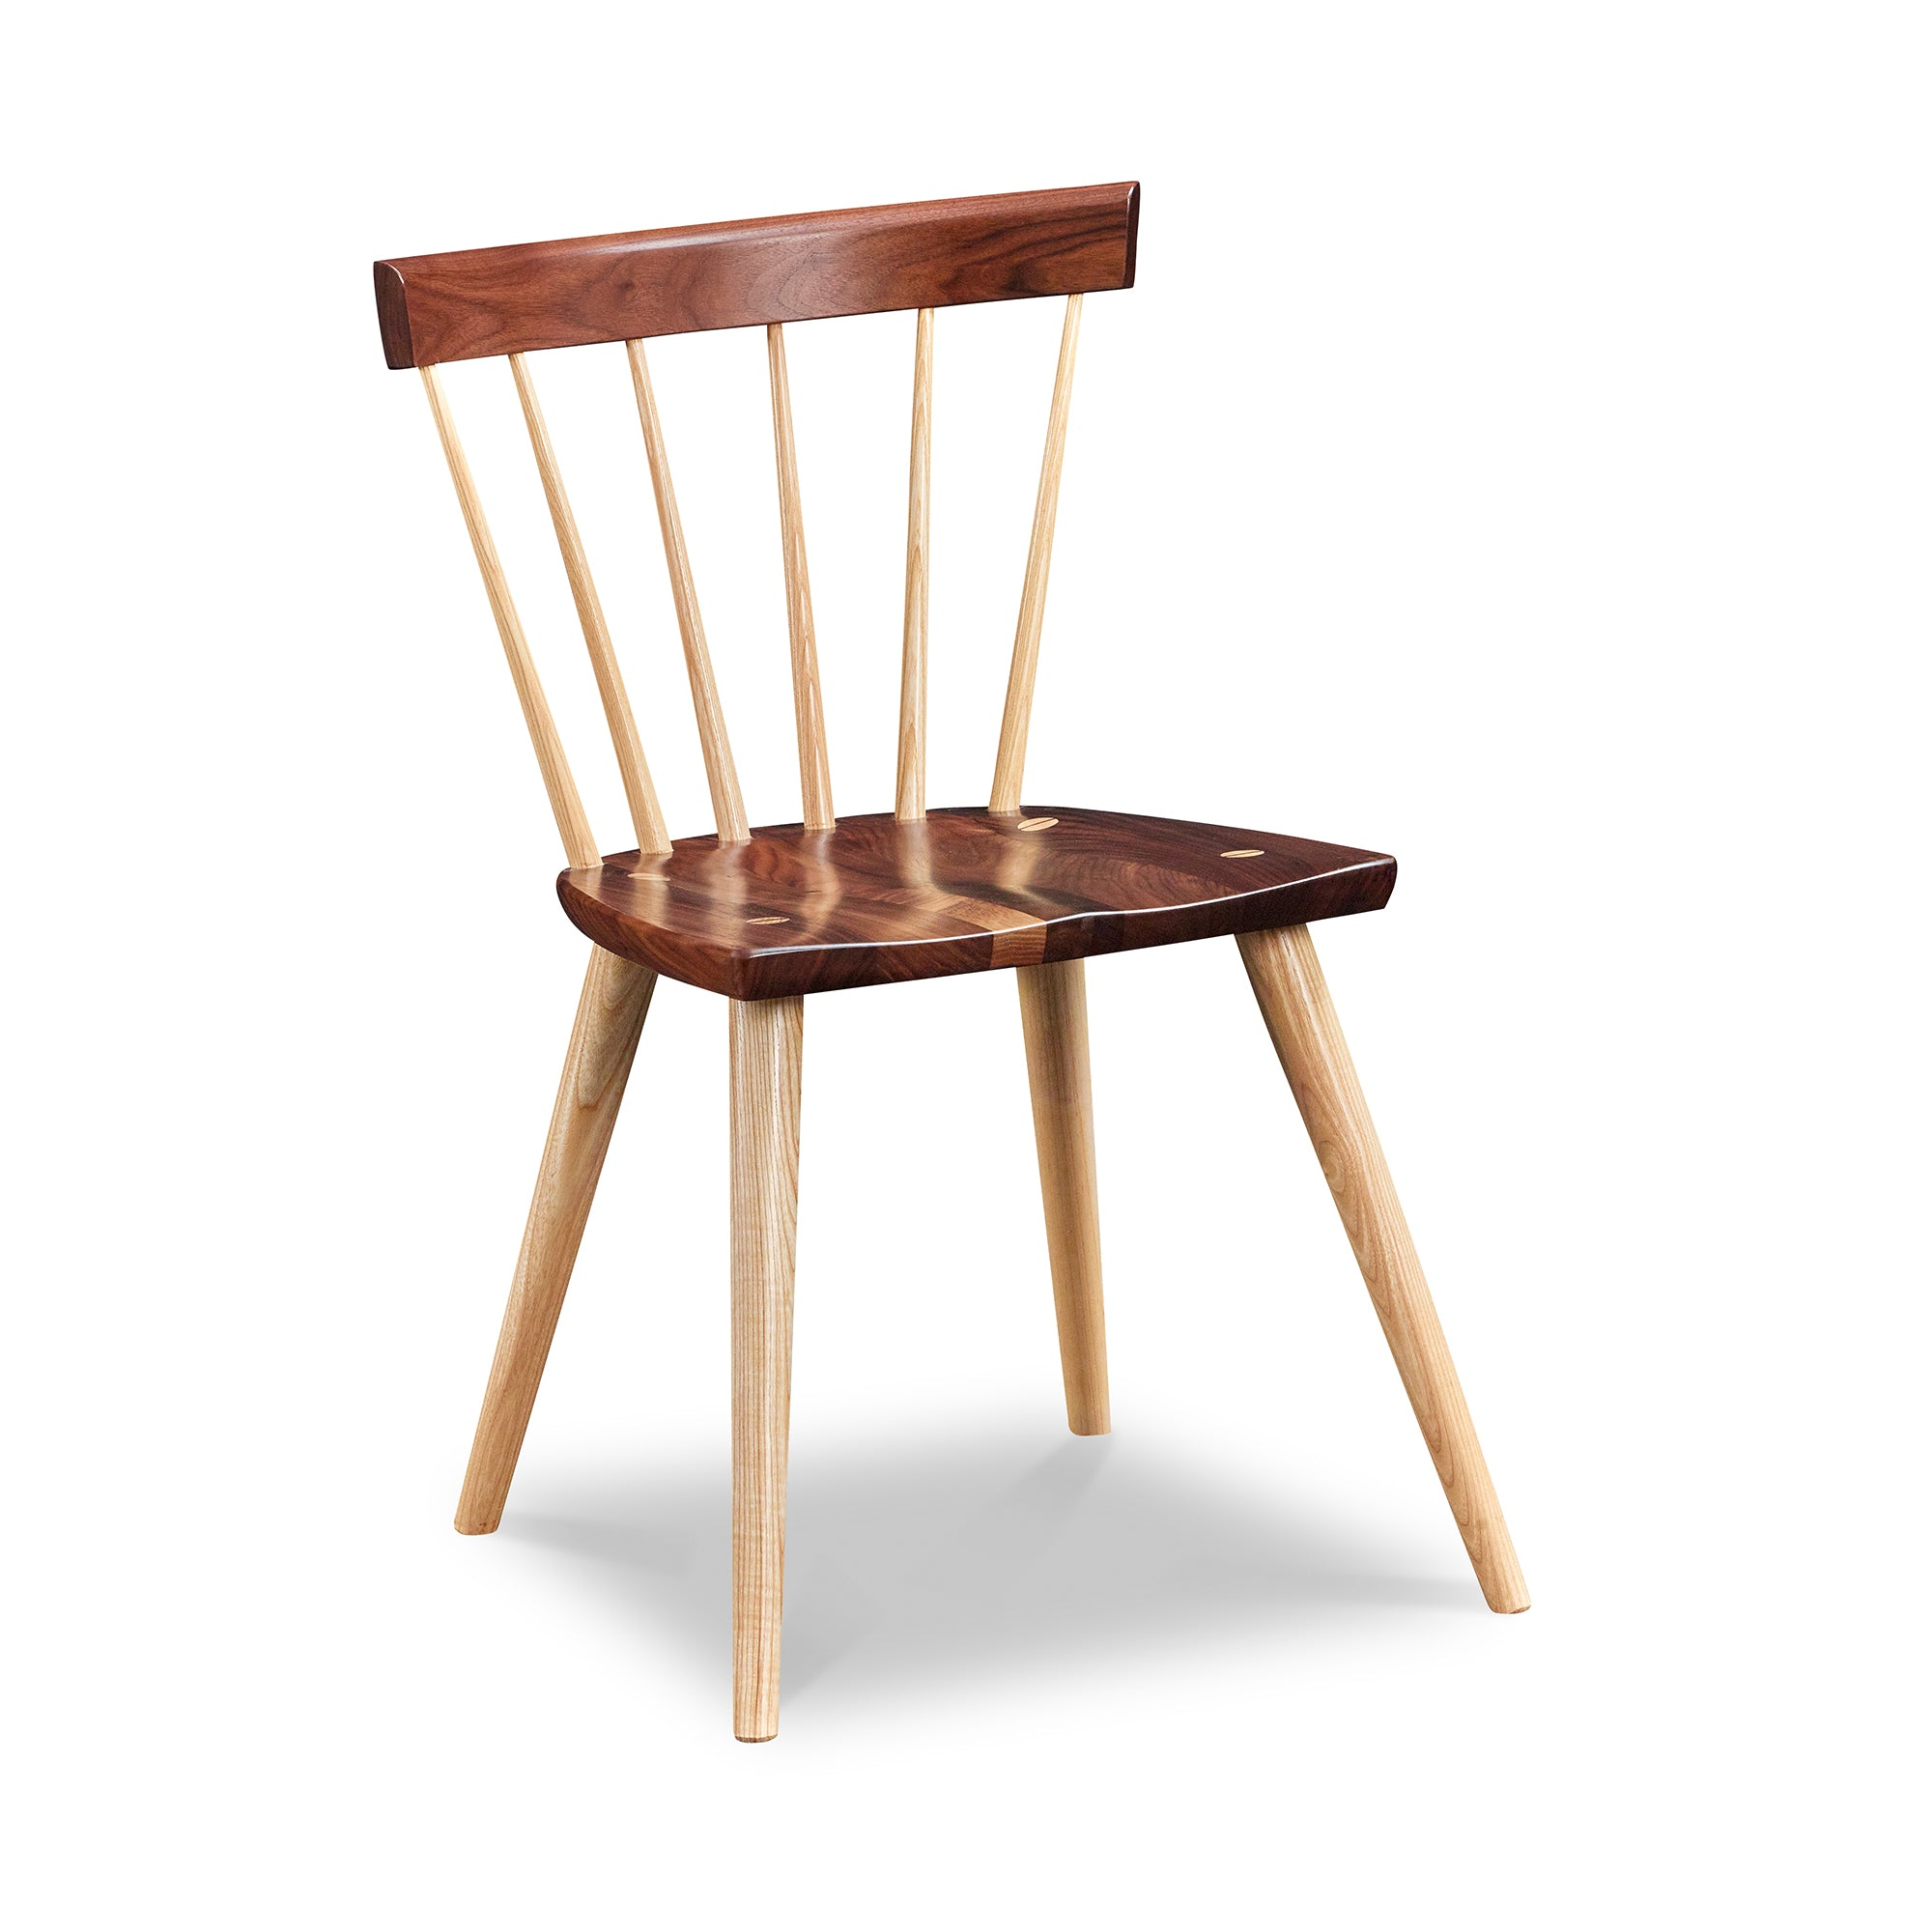 Modern Windsor inspired spindle chair with curved back in walnut and ash